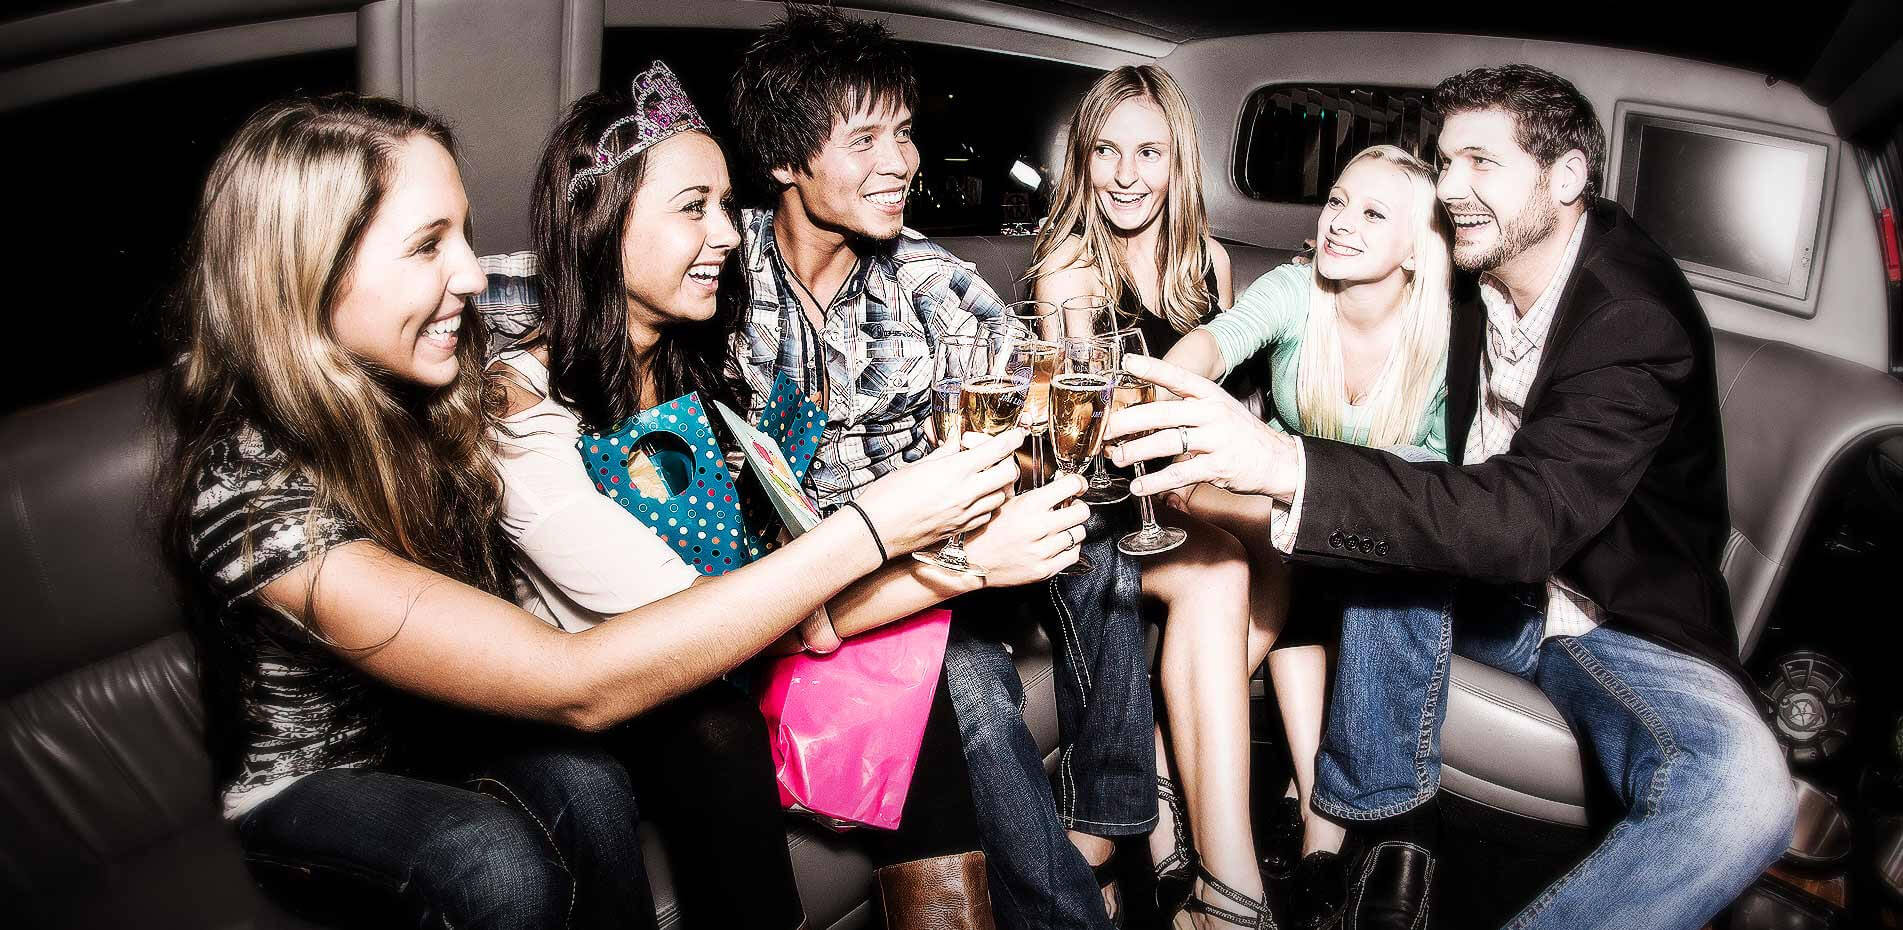 Limo Prom Birthday And Prom Limo Portland Oregon Featured 011